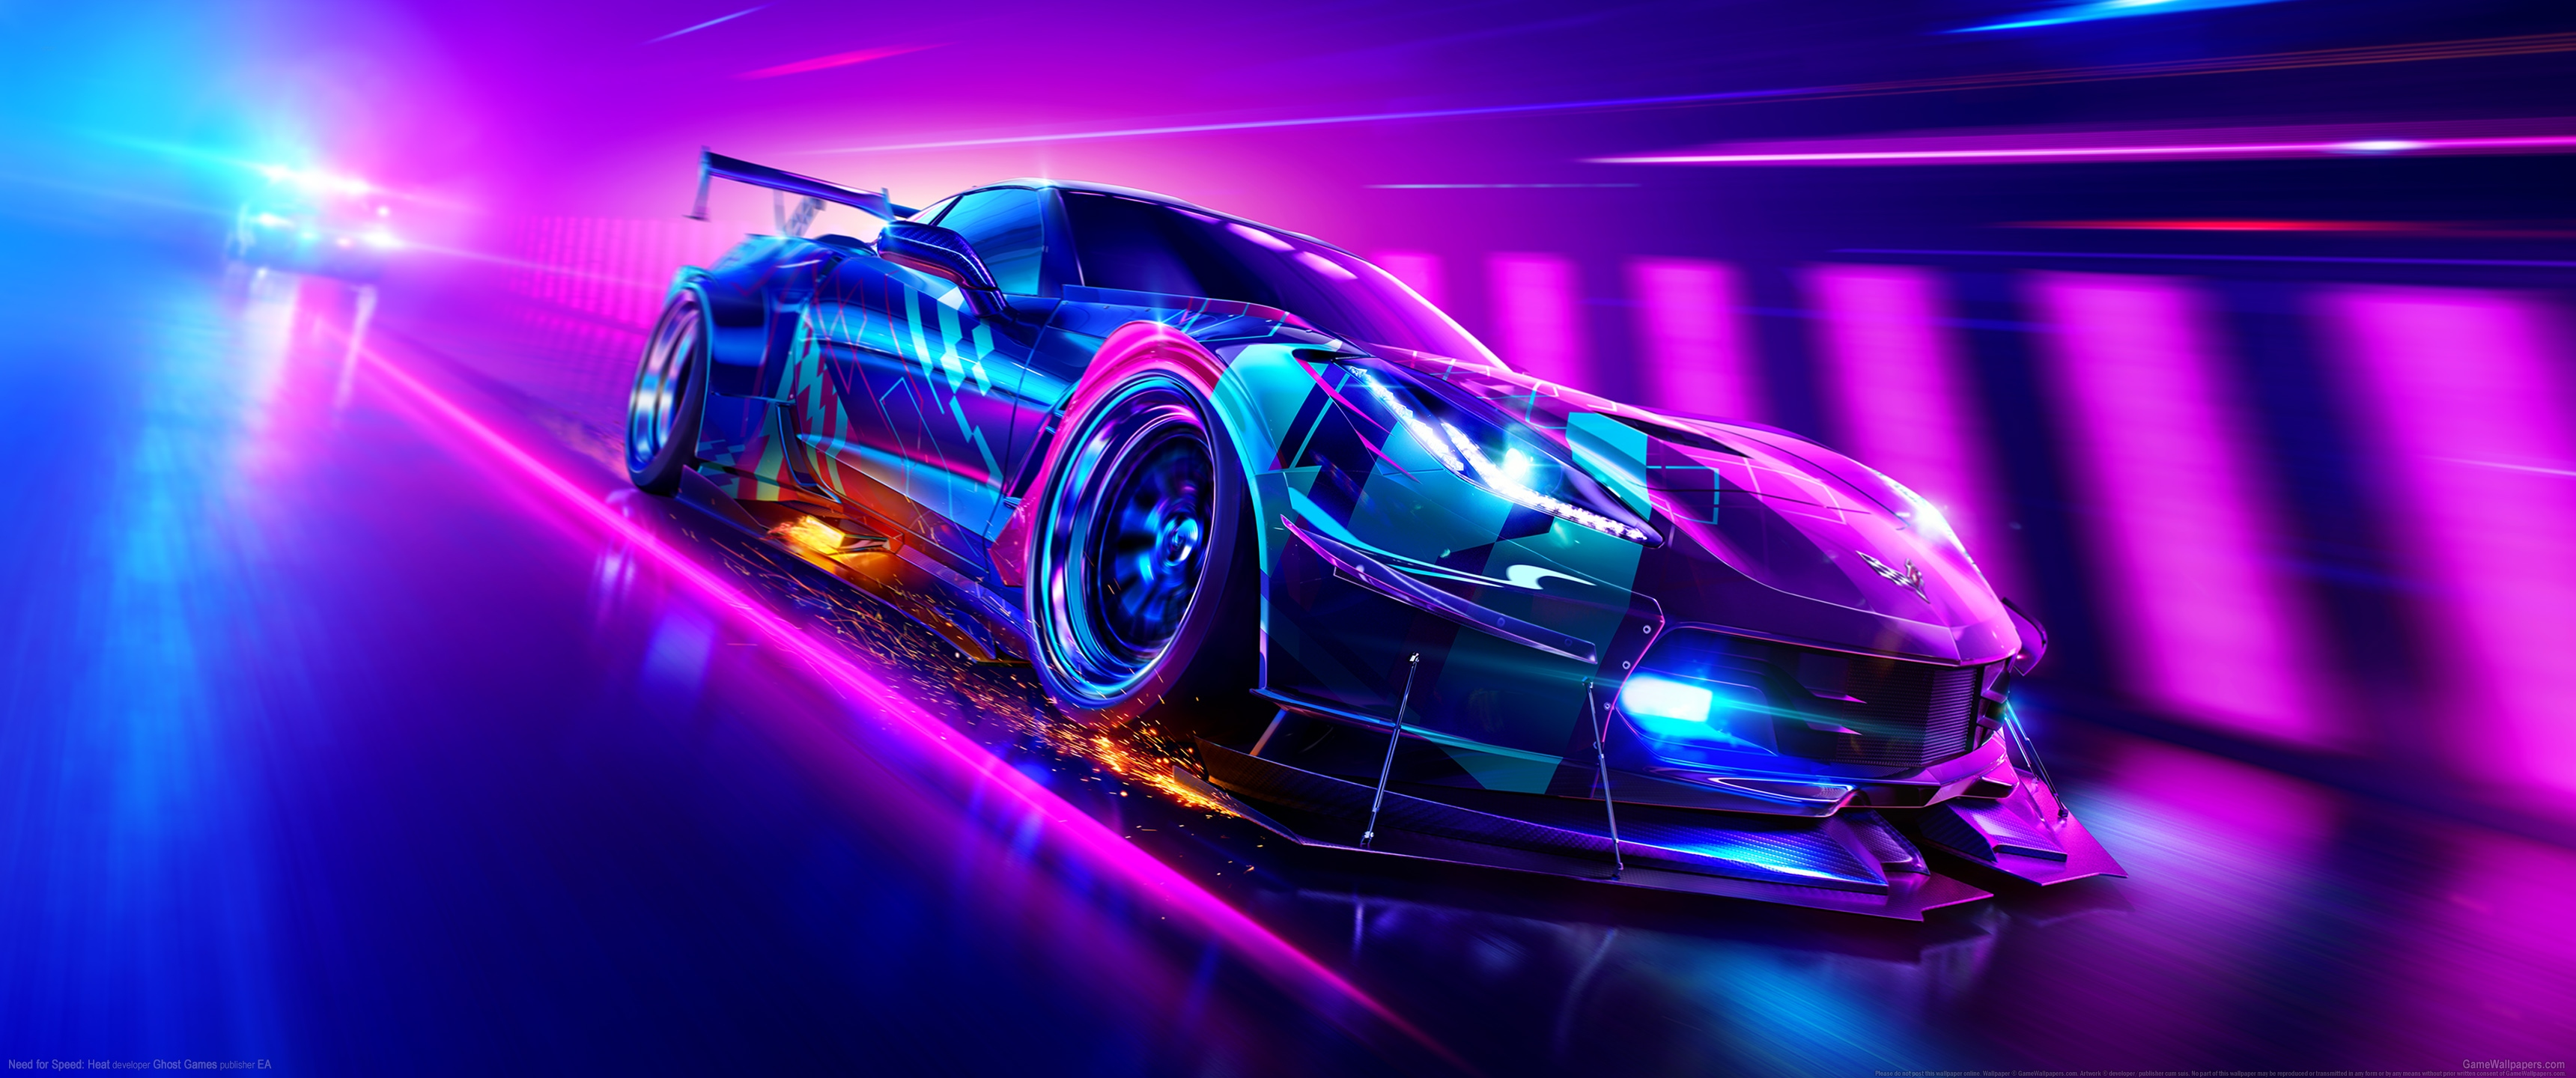 Need for Speed: Heat 3440x1440 wallpaper or background 03